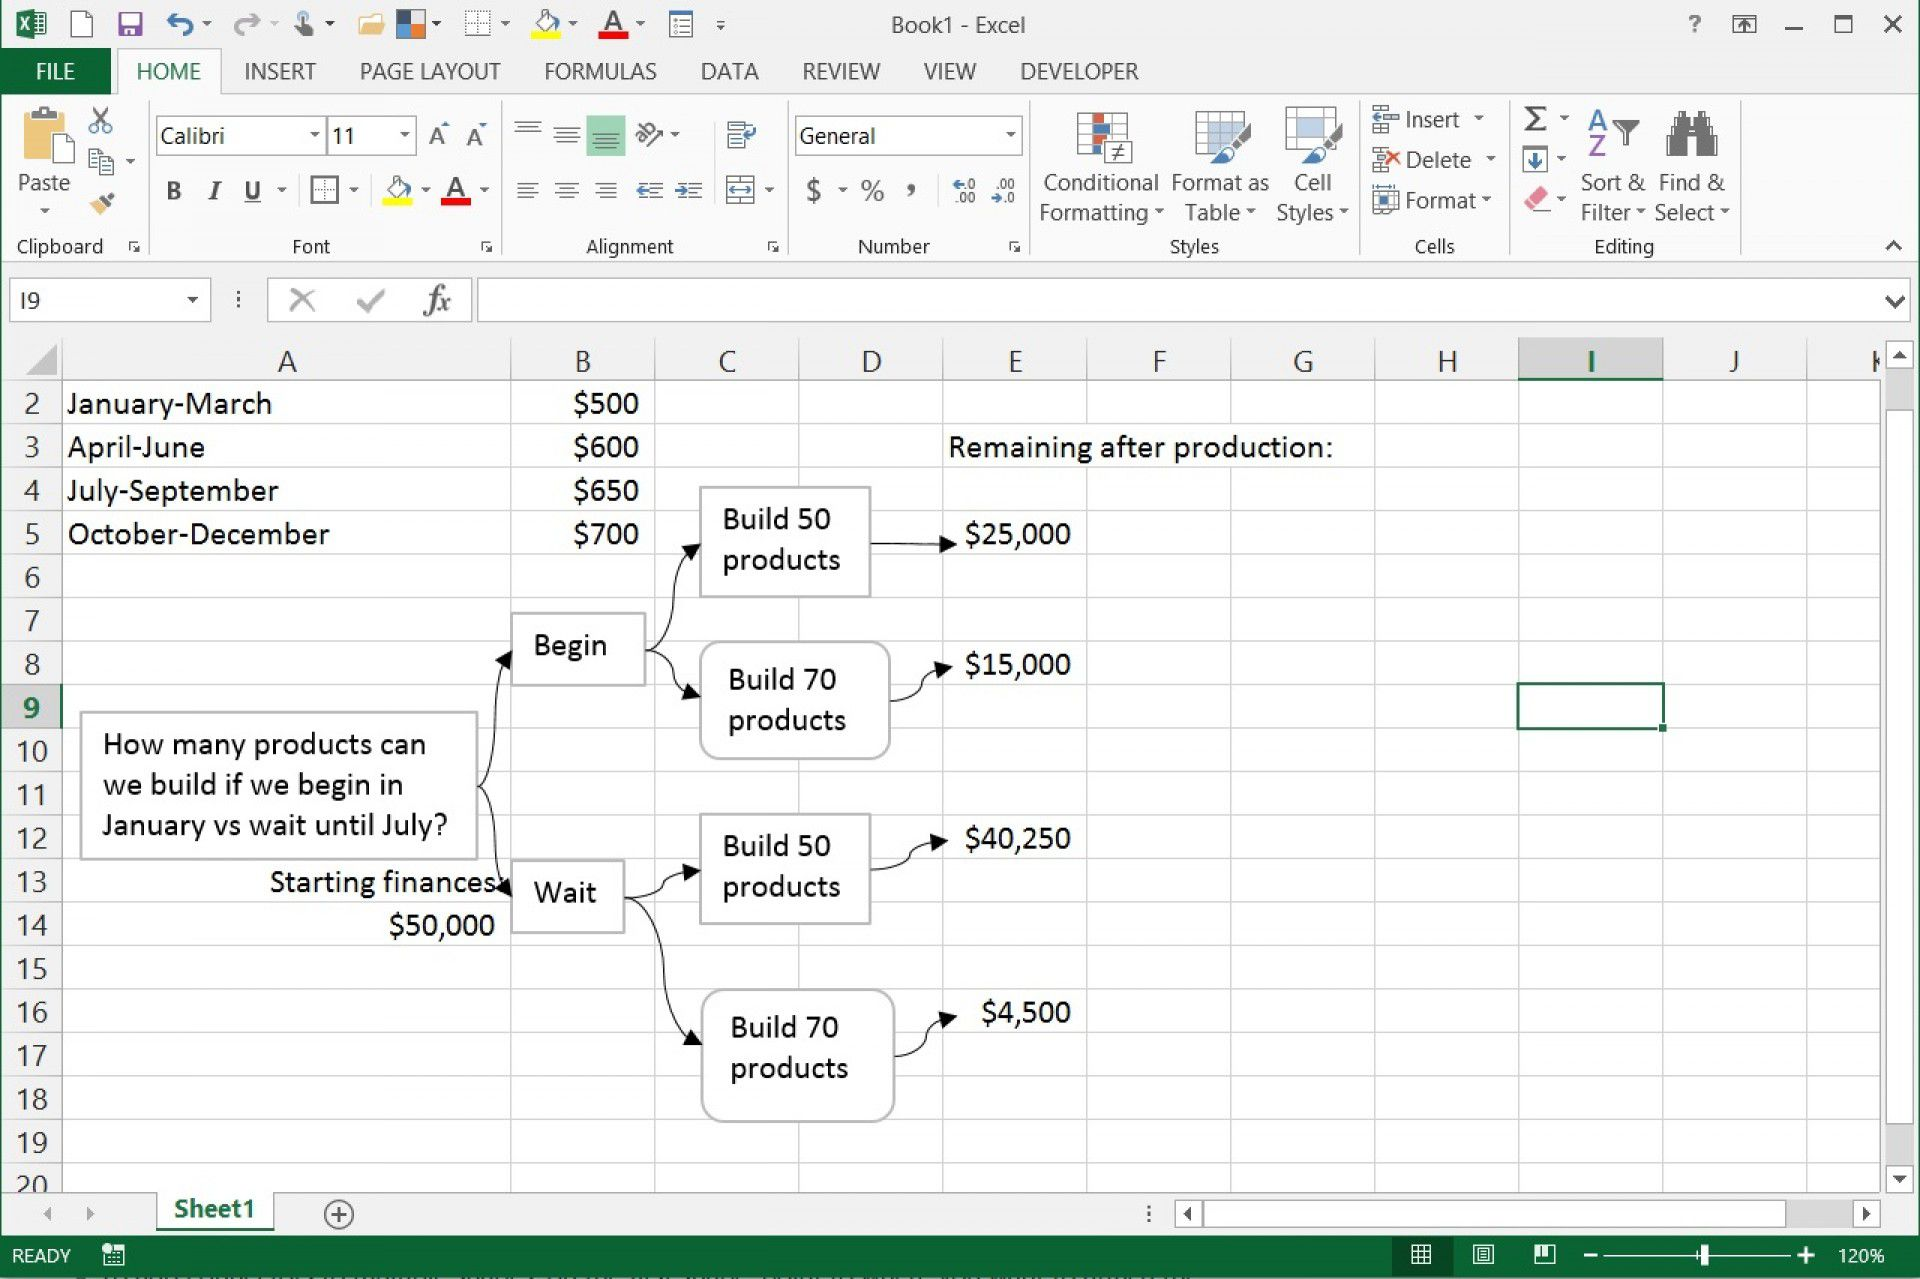 002 Frightening Decision Tree Template Excel 2016 Highest Quality Full